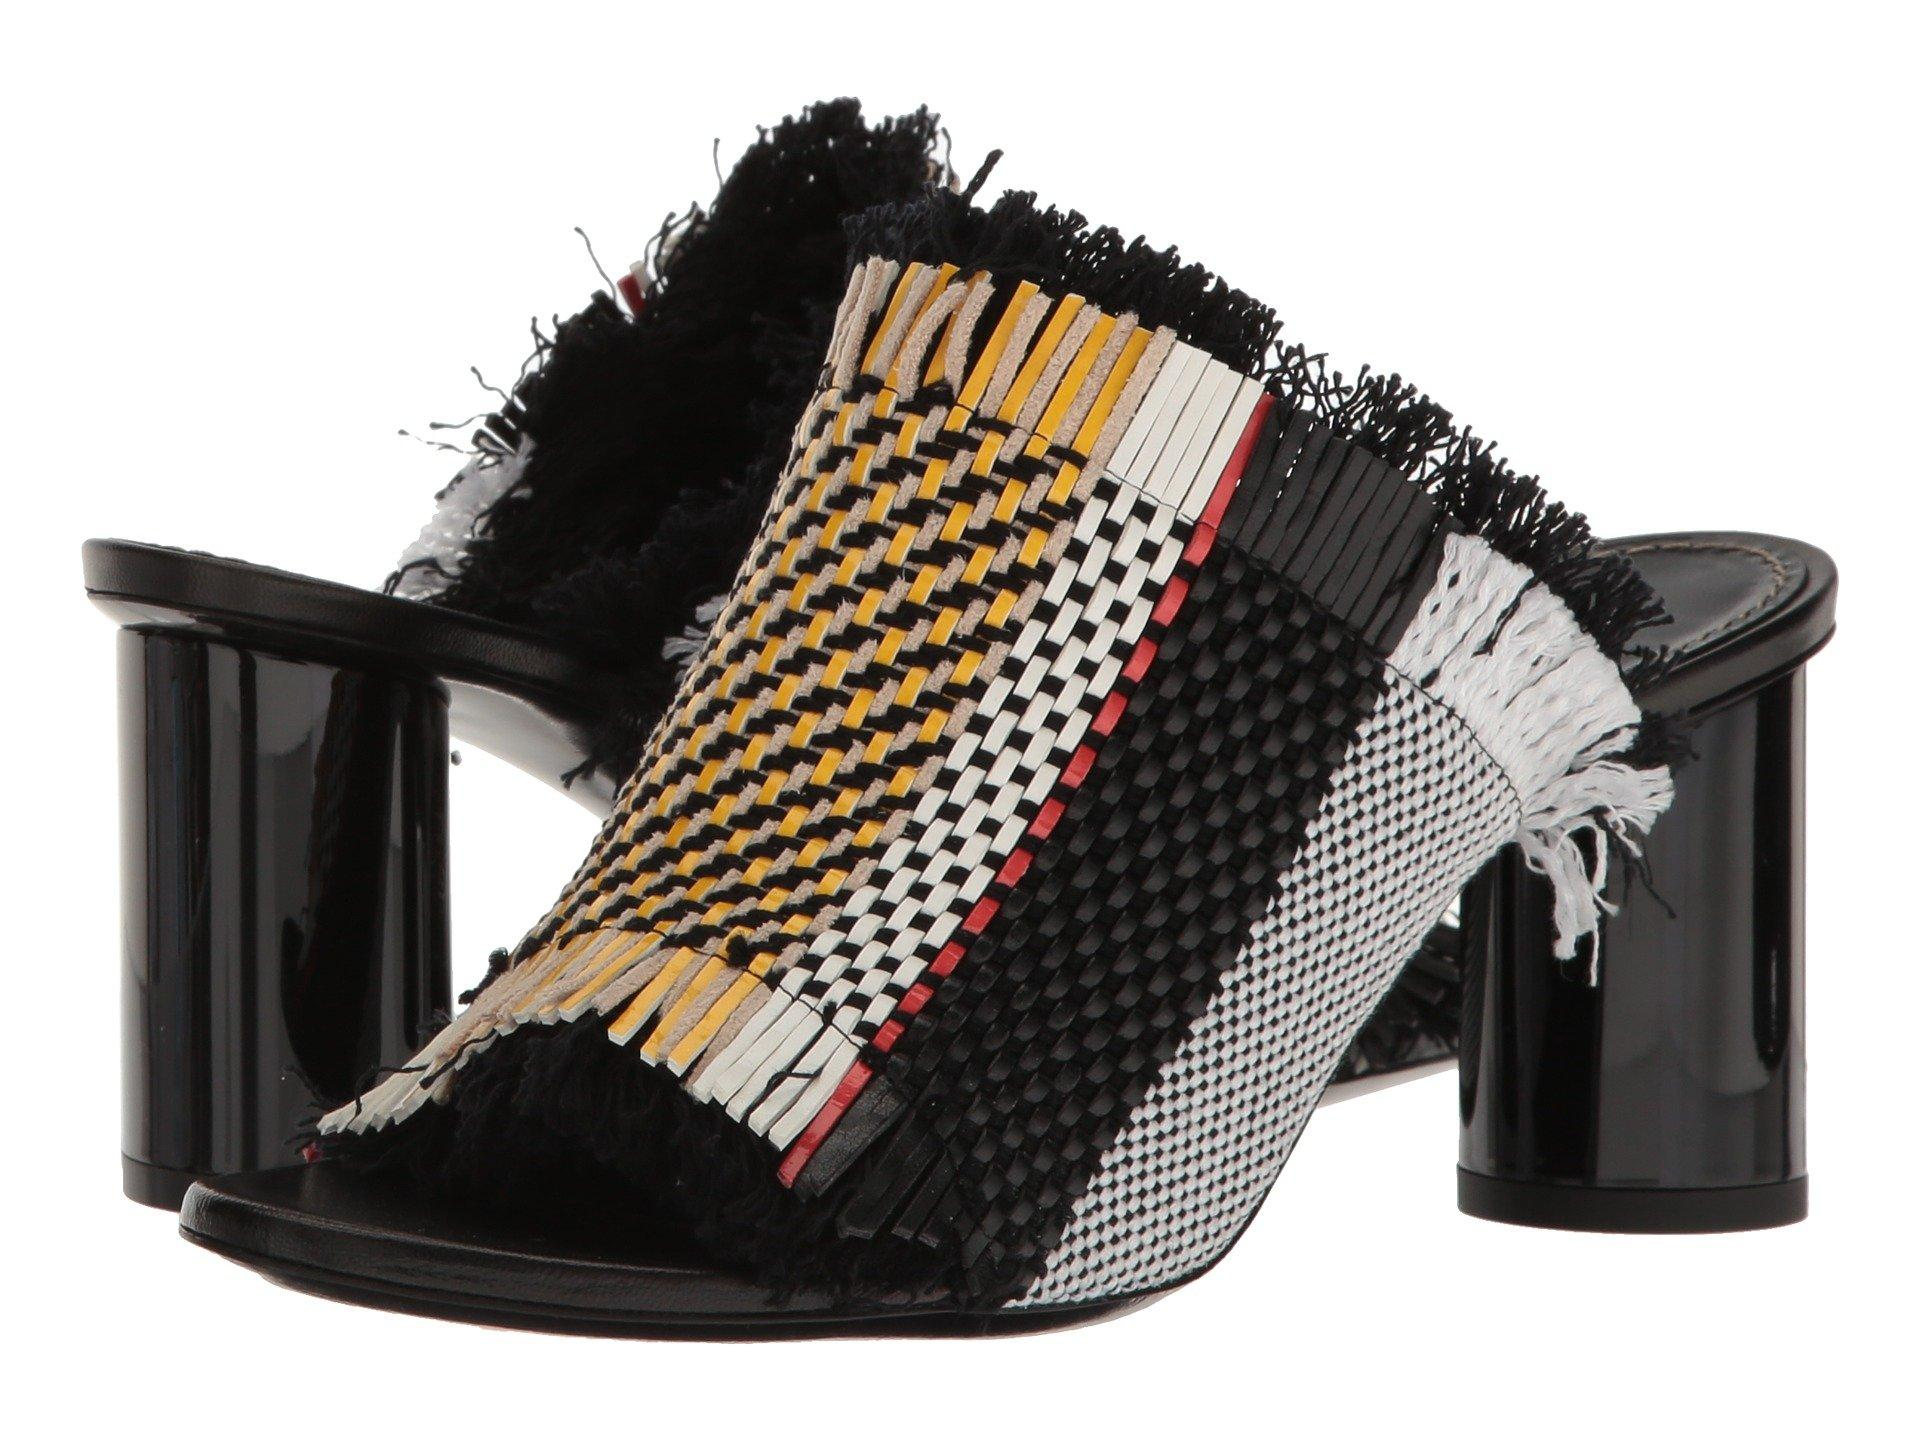 Proenza Schouler Woven Leather And Canvas Block-Heel Sandals In Multi